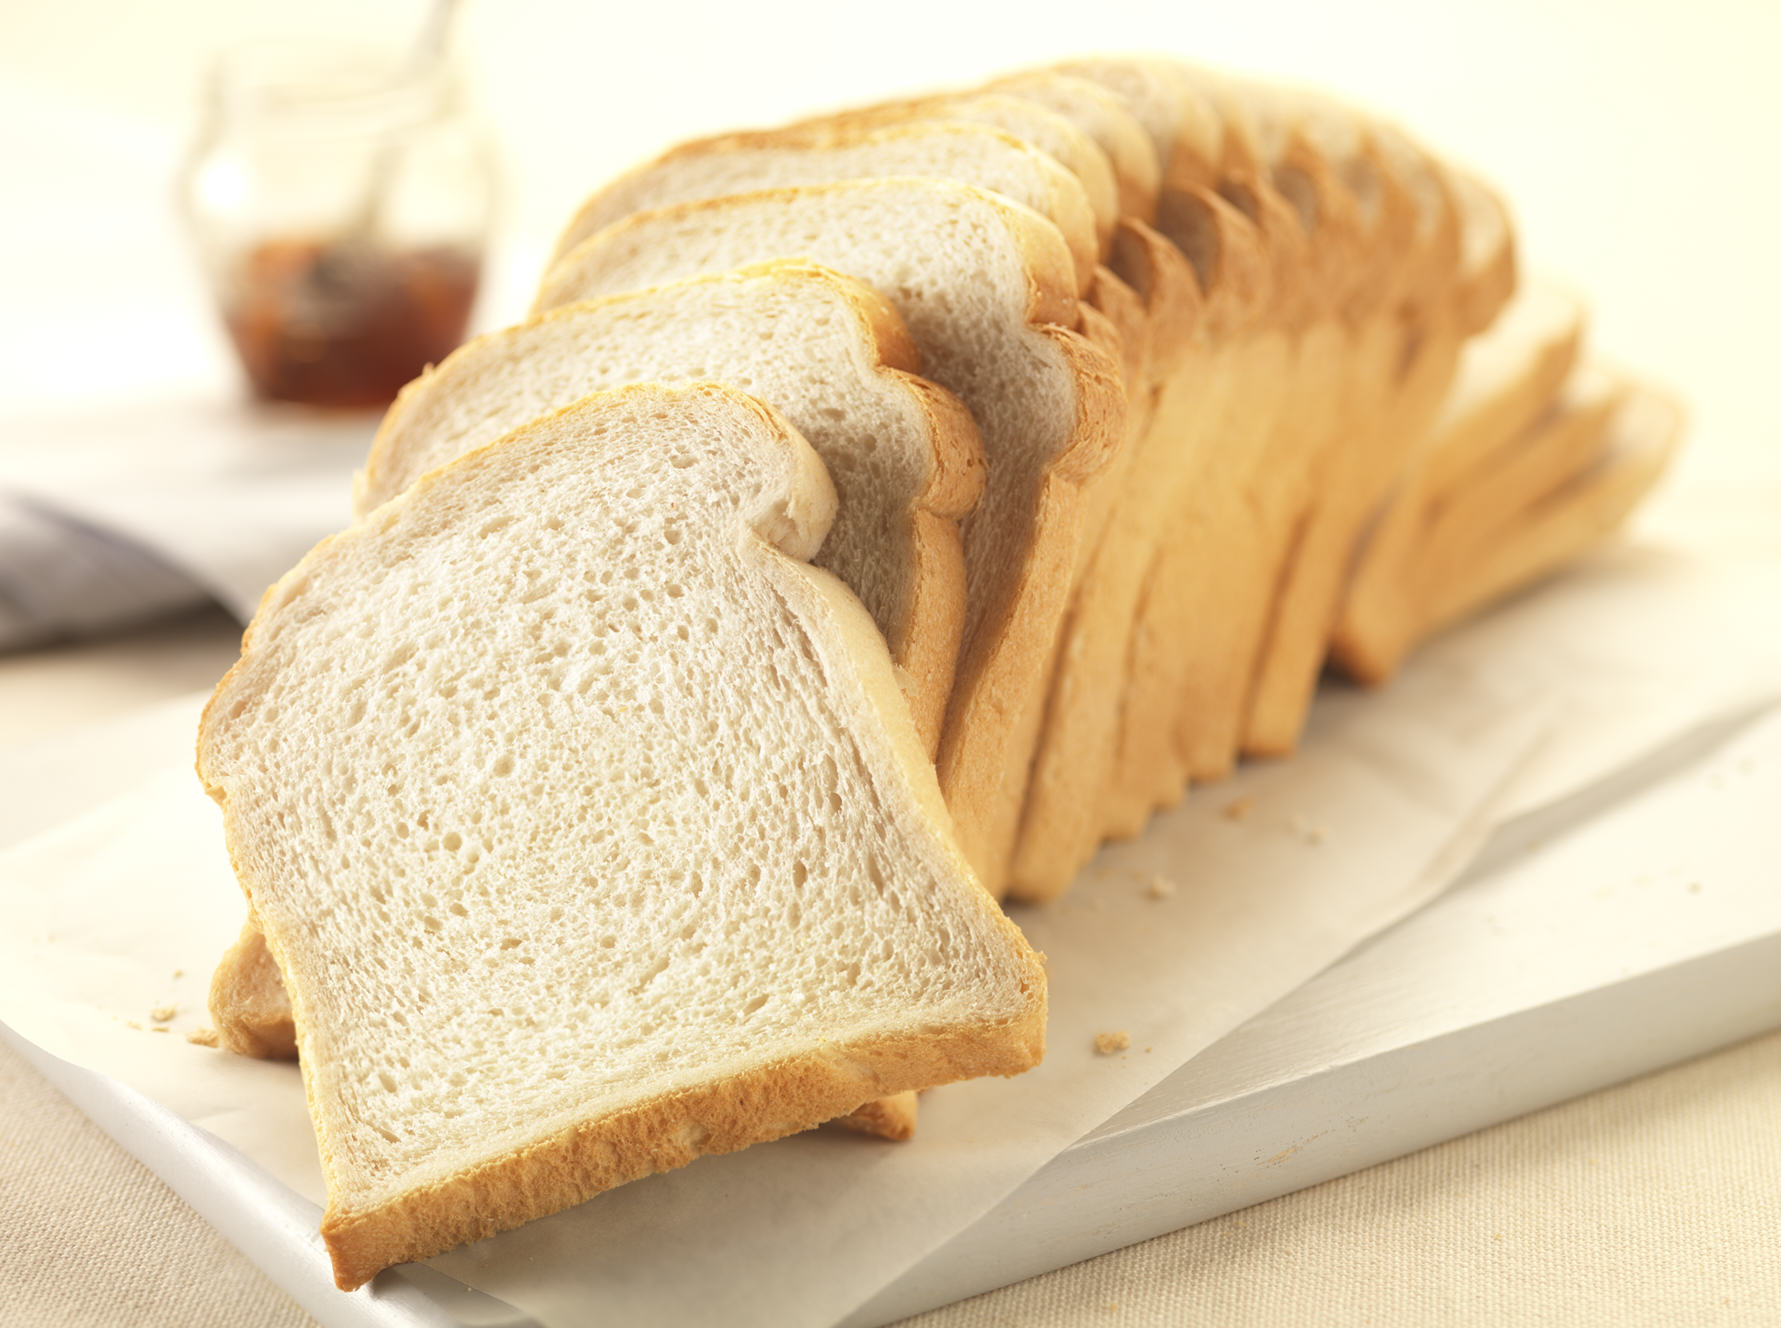 Could This Be The End For Sliced White Bread In The UK? whitebread1